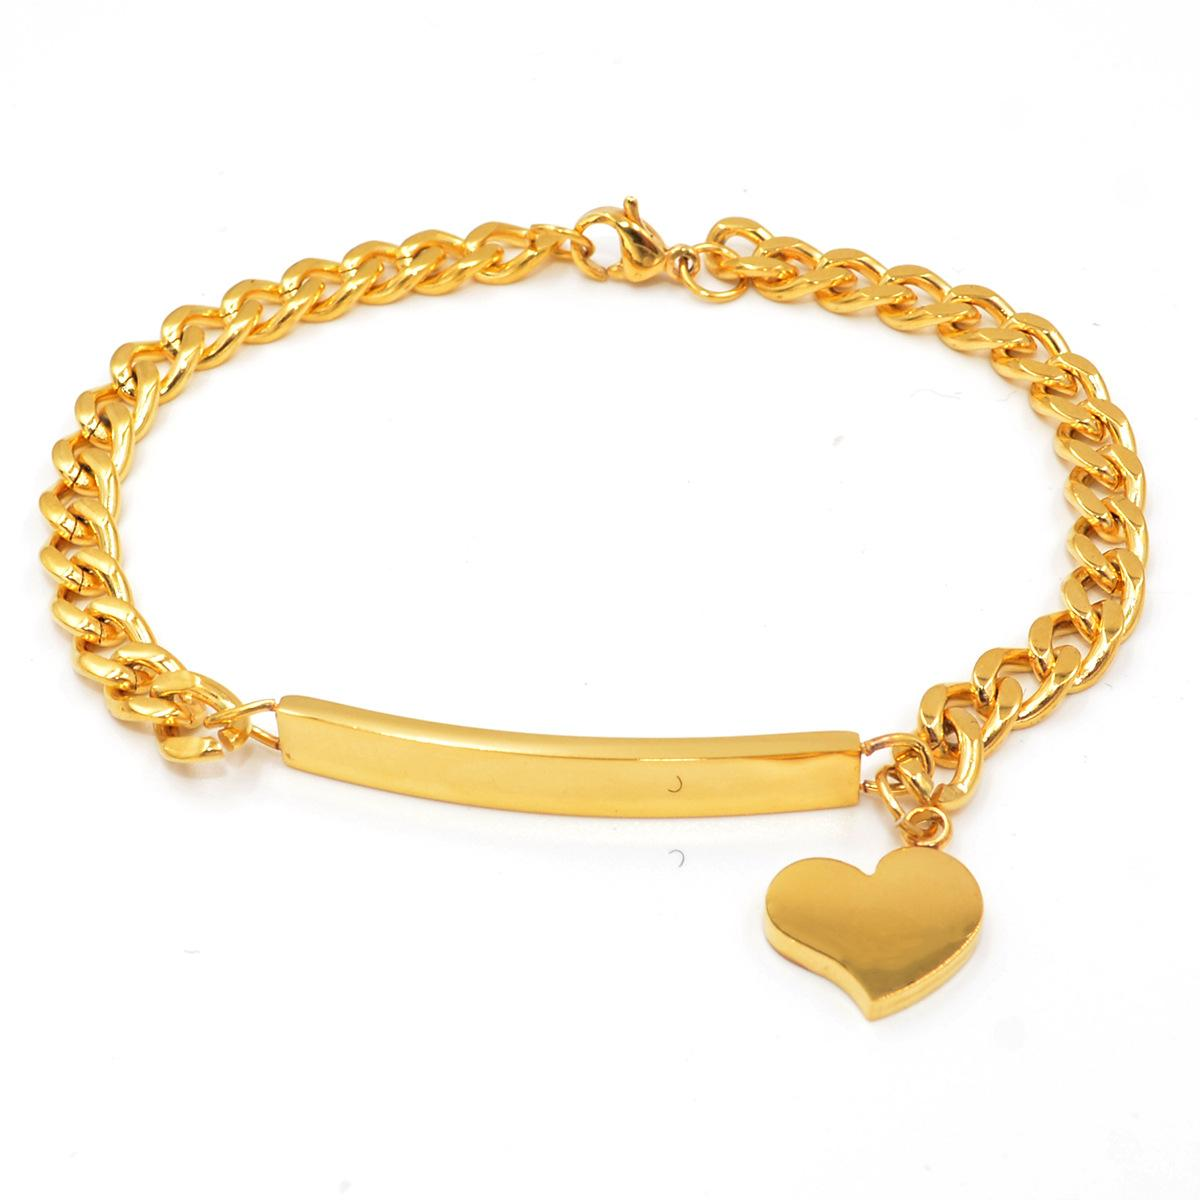 ygv women vermeil mini bracelets london belcher hires of yellow gold bracelet links gb jewellery en for